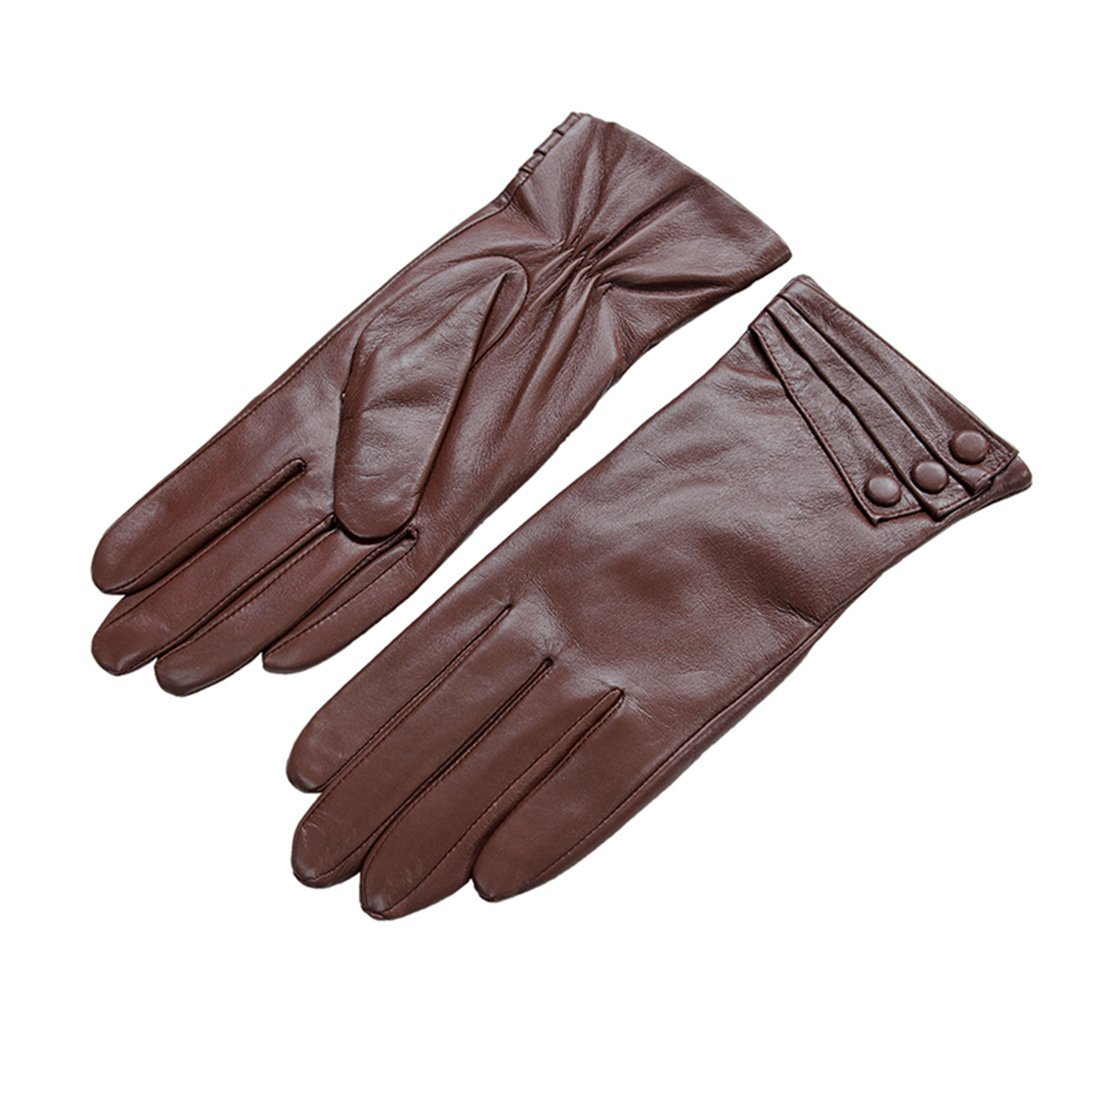 Nappaglo Nappa Leather Gloves Warm Lining Winter Button Decoration Imported Leather Lambskin Gloves for Women (L, Coffee)